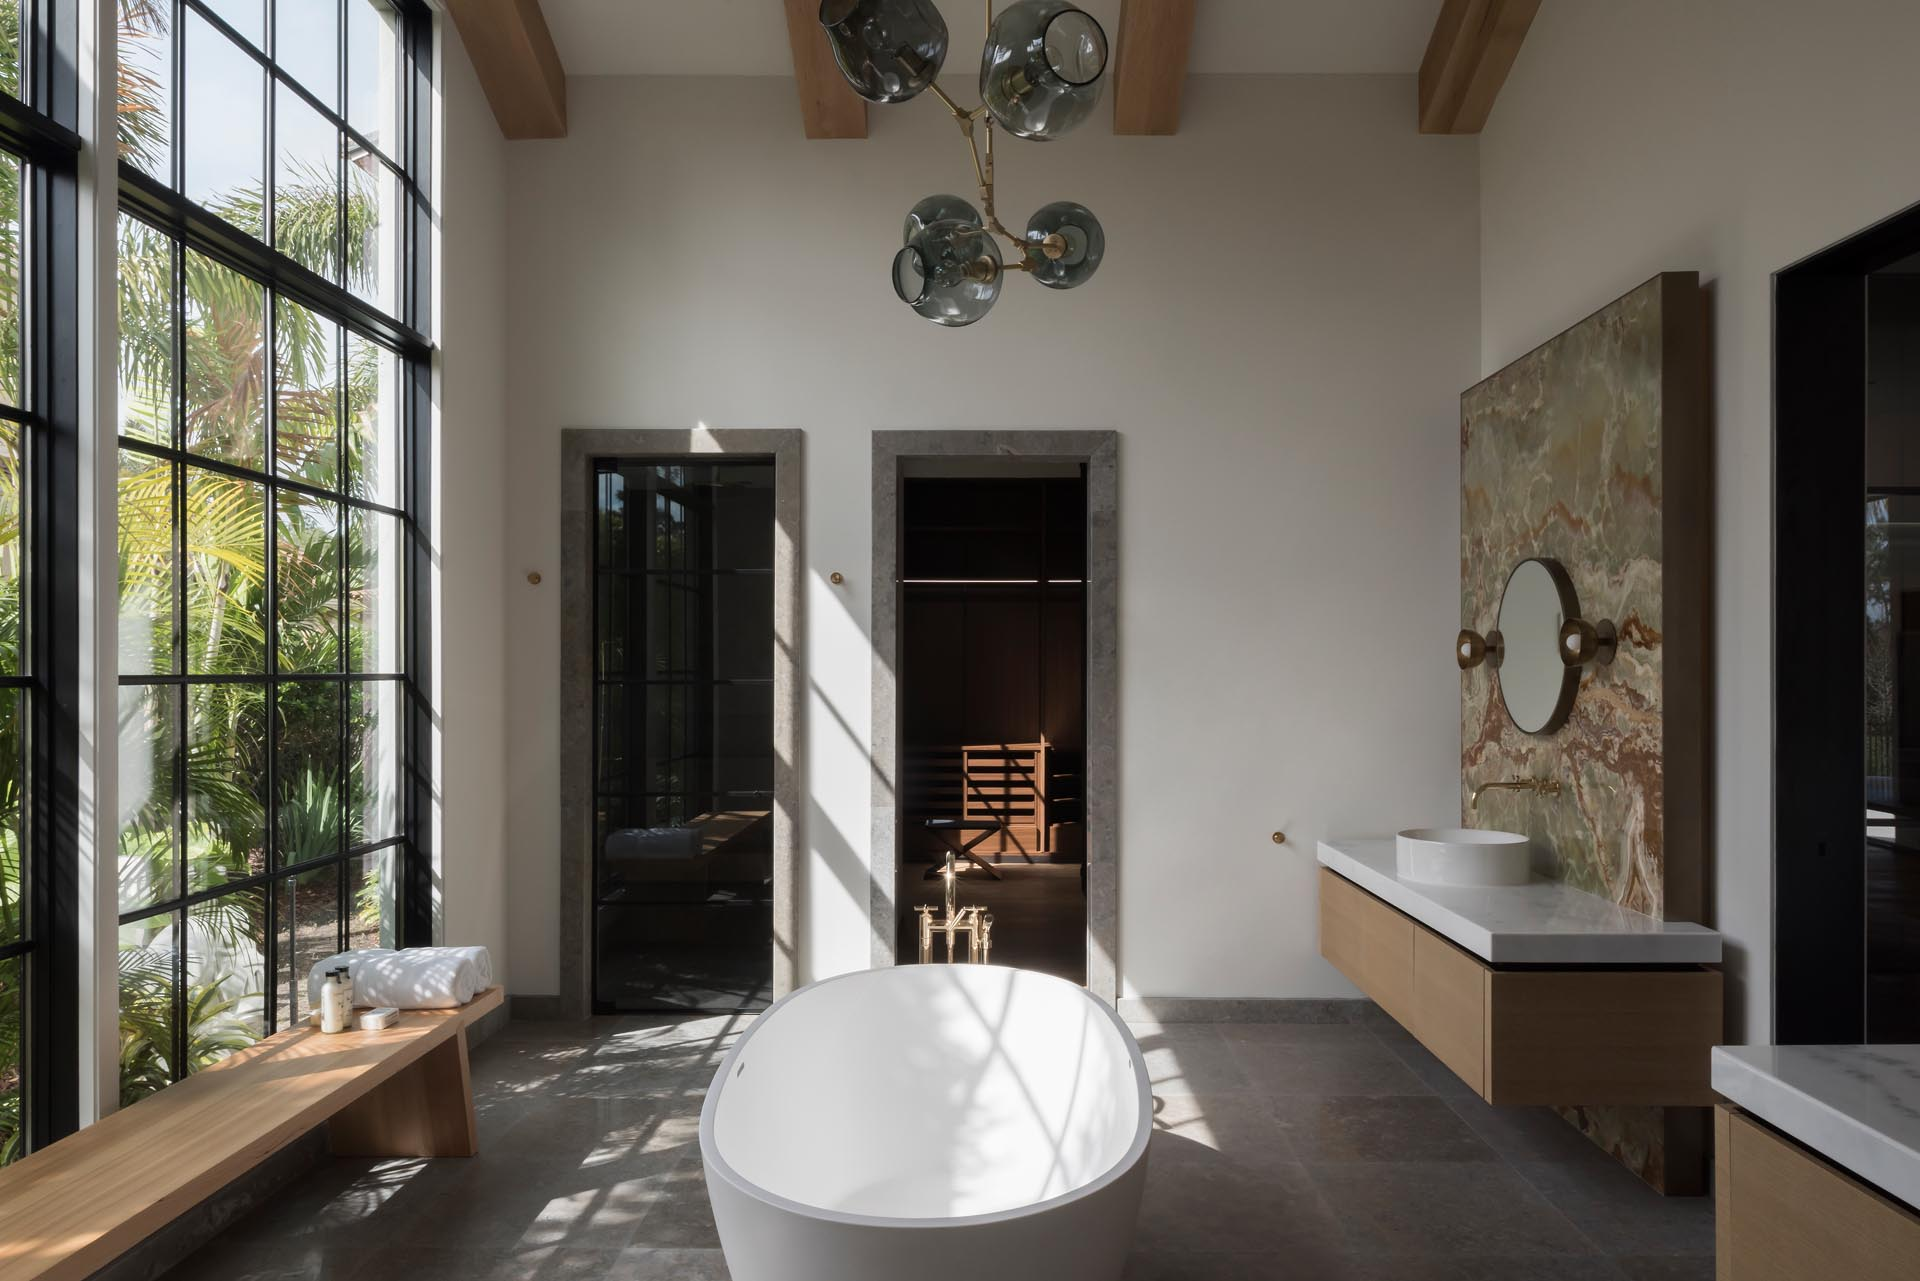 In this modern bathroom, tall windows flood the interior with natural light, while a freestanding bathtub takes center stage.